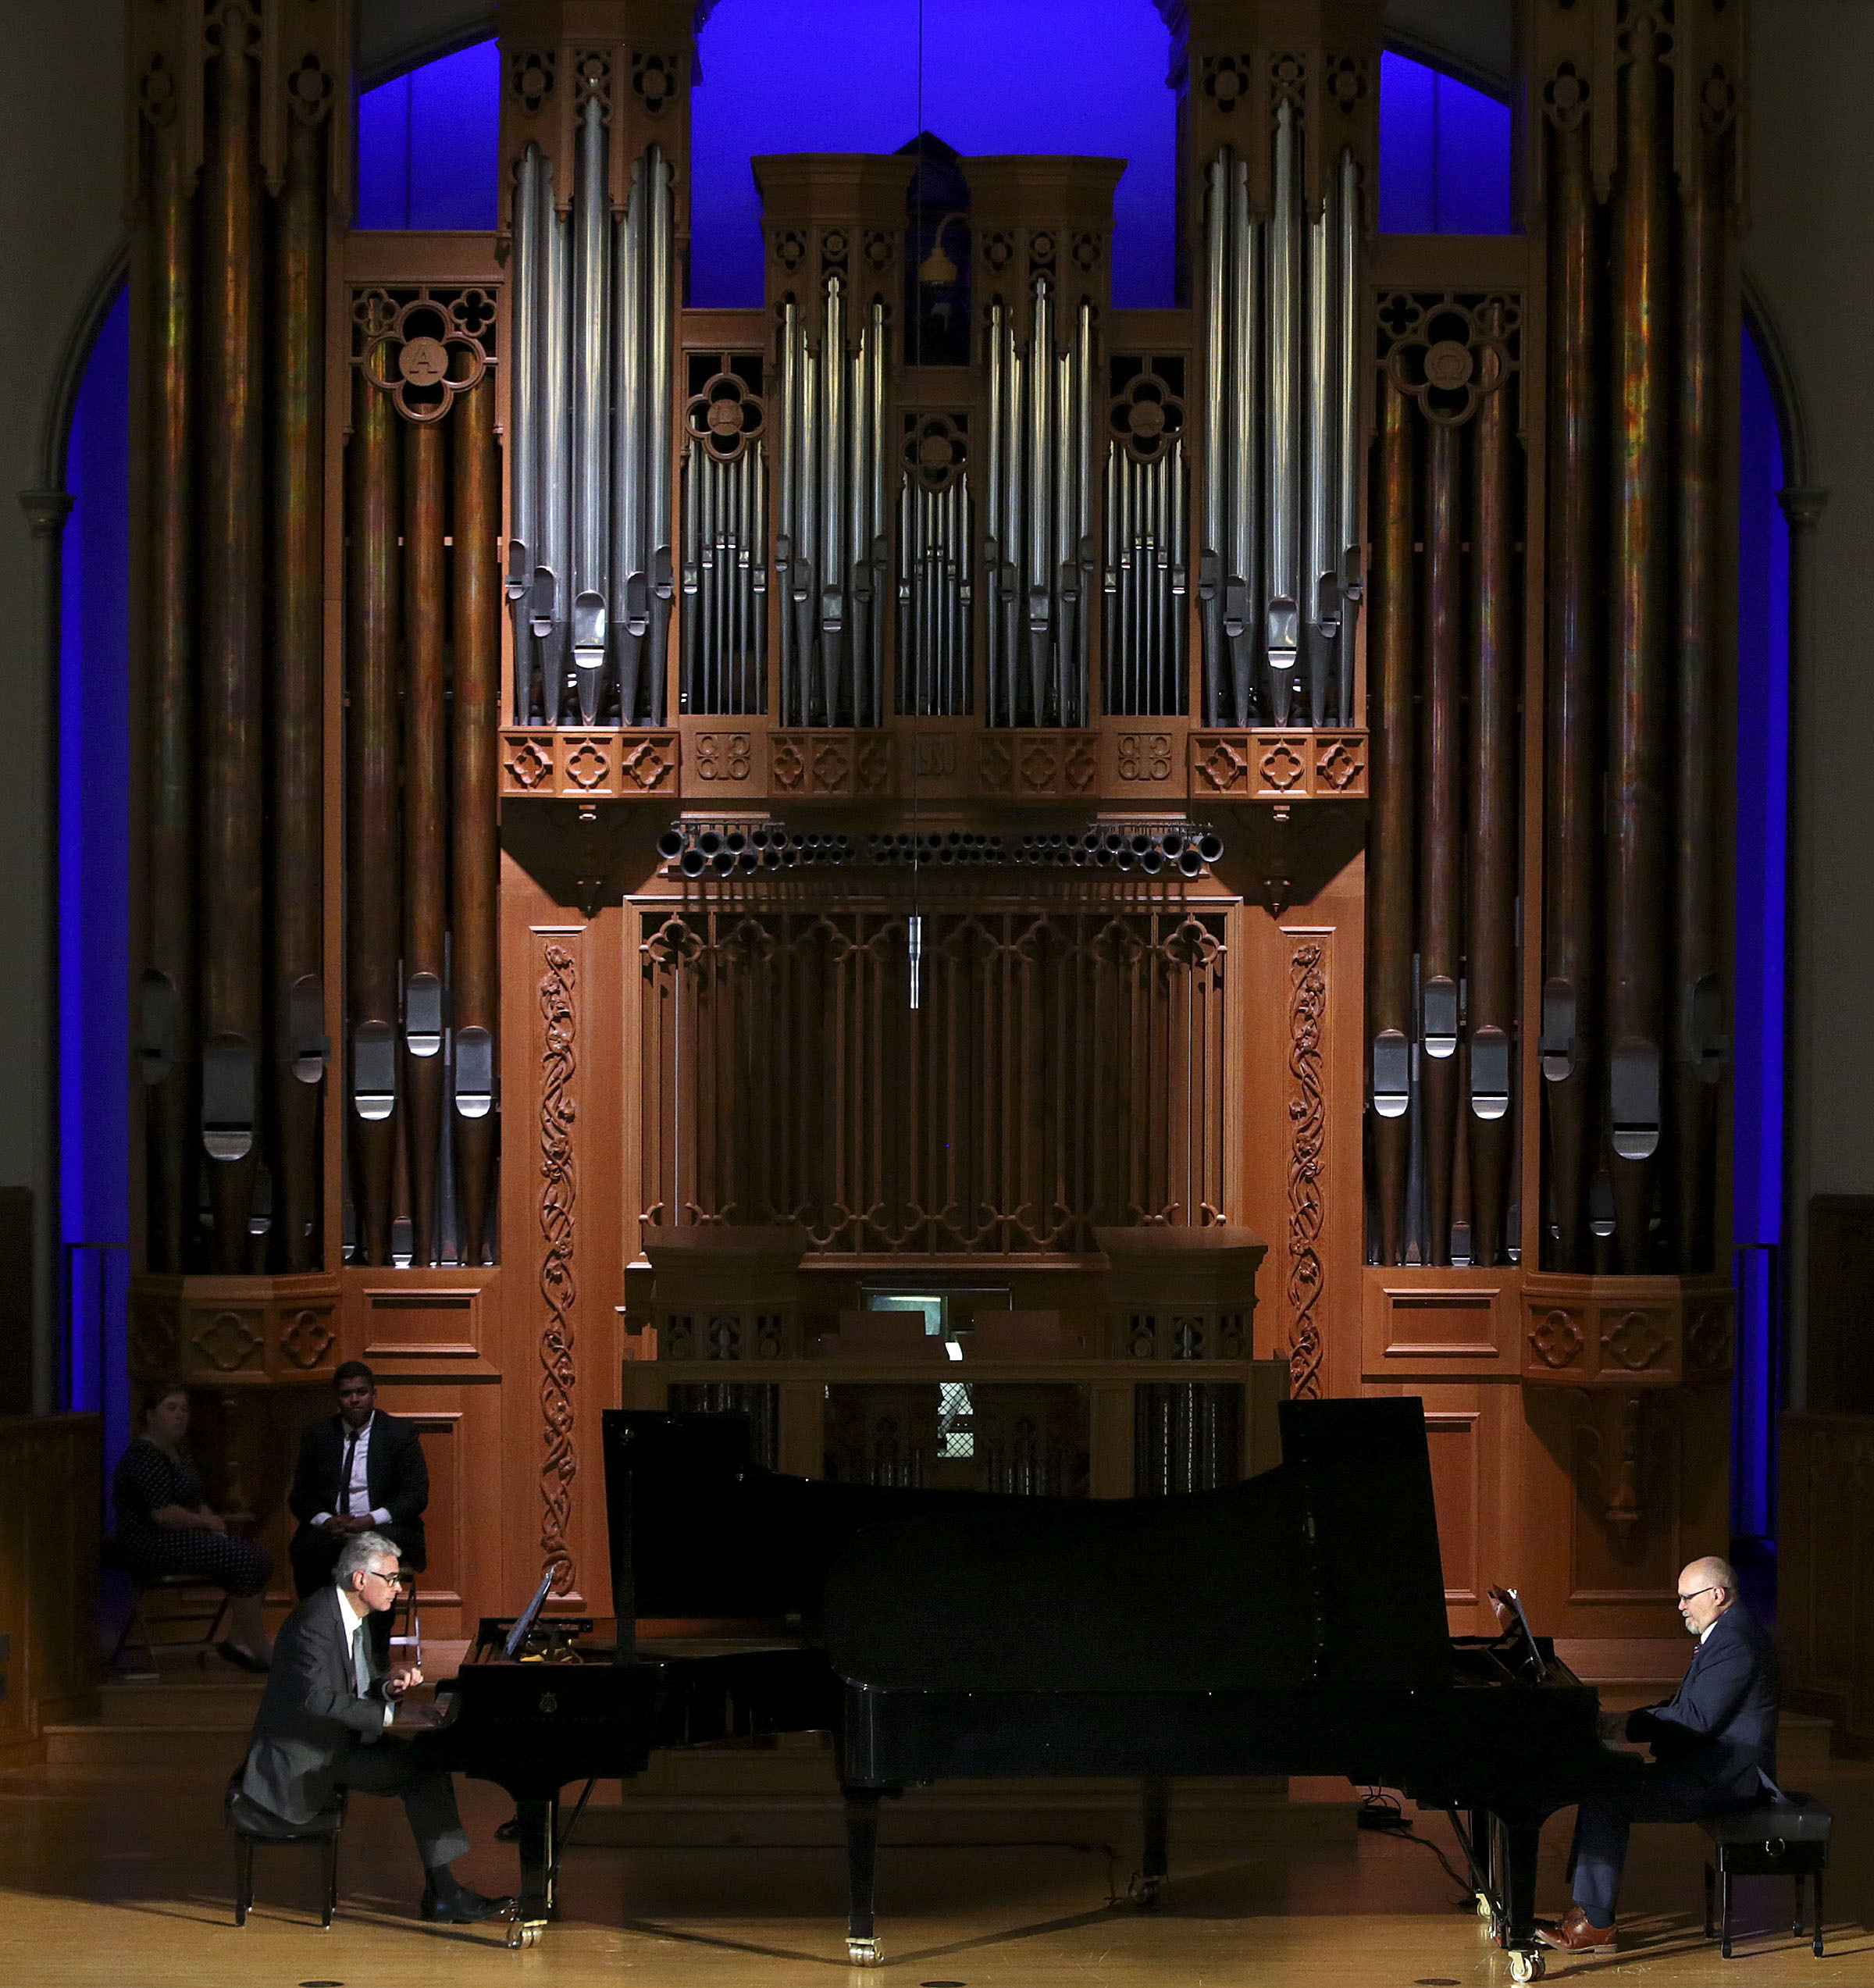 Bishop Gérald Caussé and Nicolas Giusti play a piano duet for LDS Business College students during a devotional at Assembly Hall on Temple Square in Salt Lake City on Tuesday, Sept. 25, 2018. Giusti composed the duet.